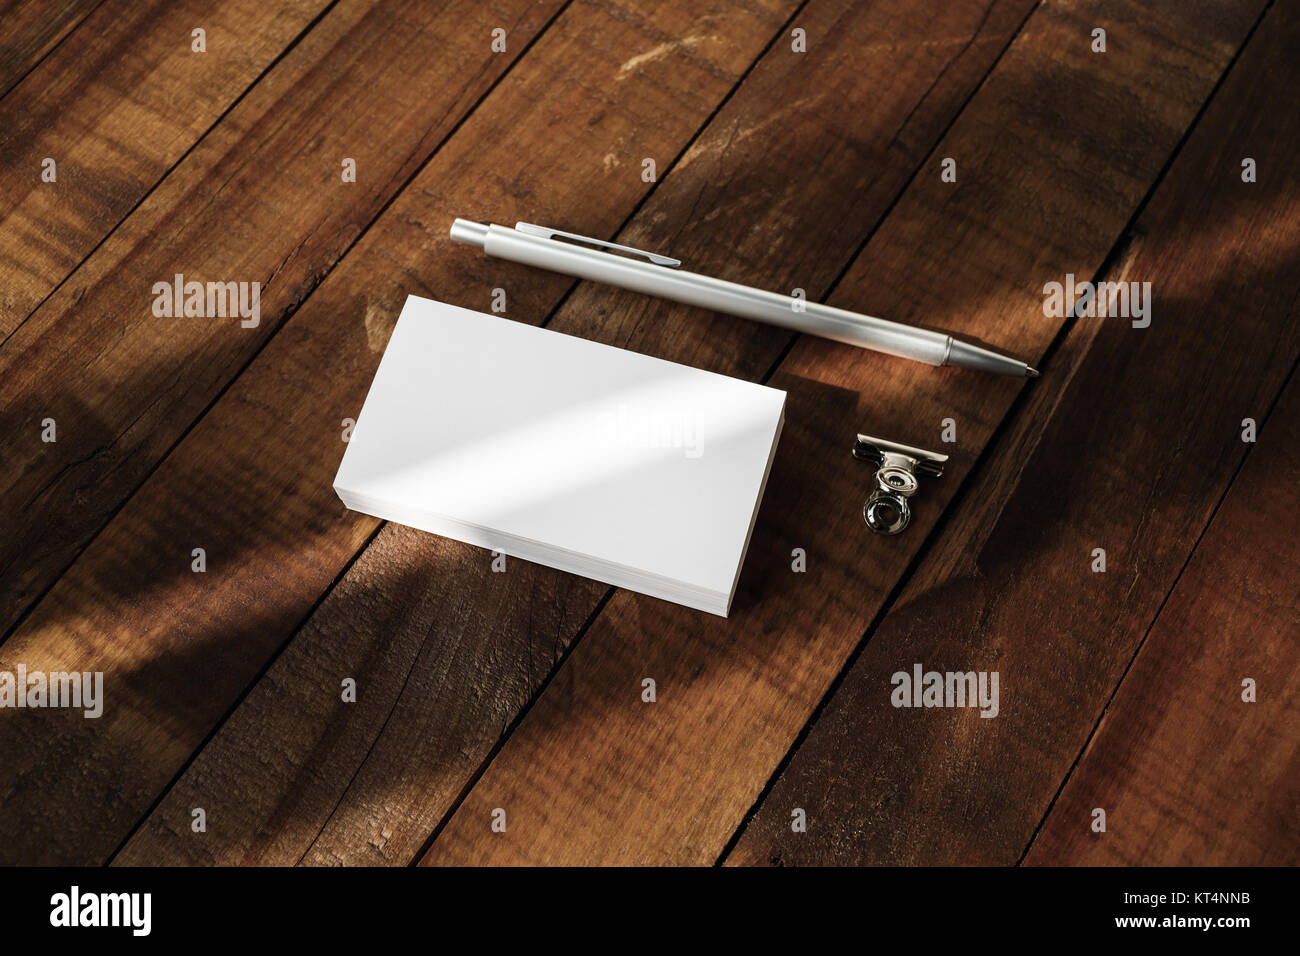 Blank business cards and pen - Stock Image